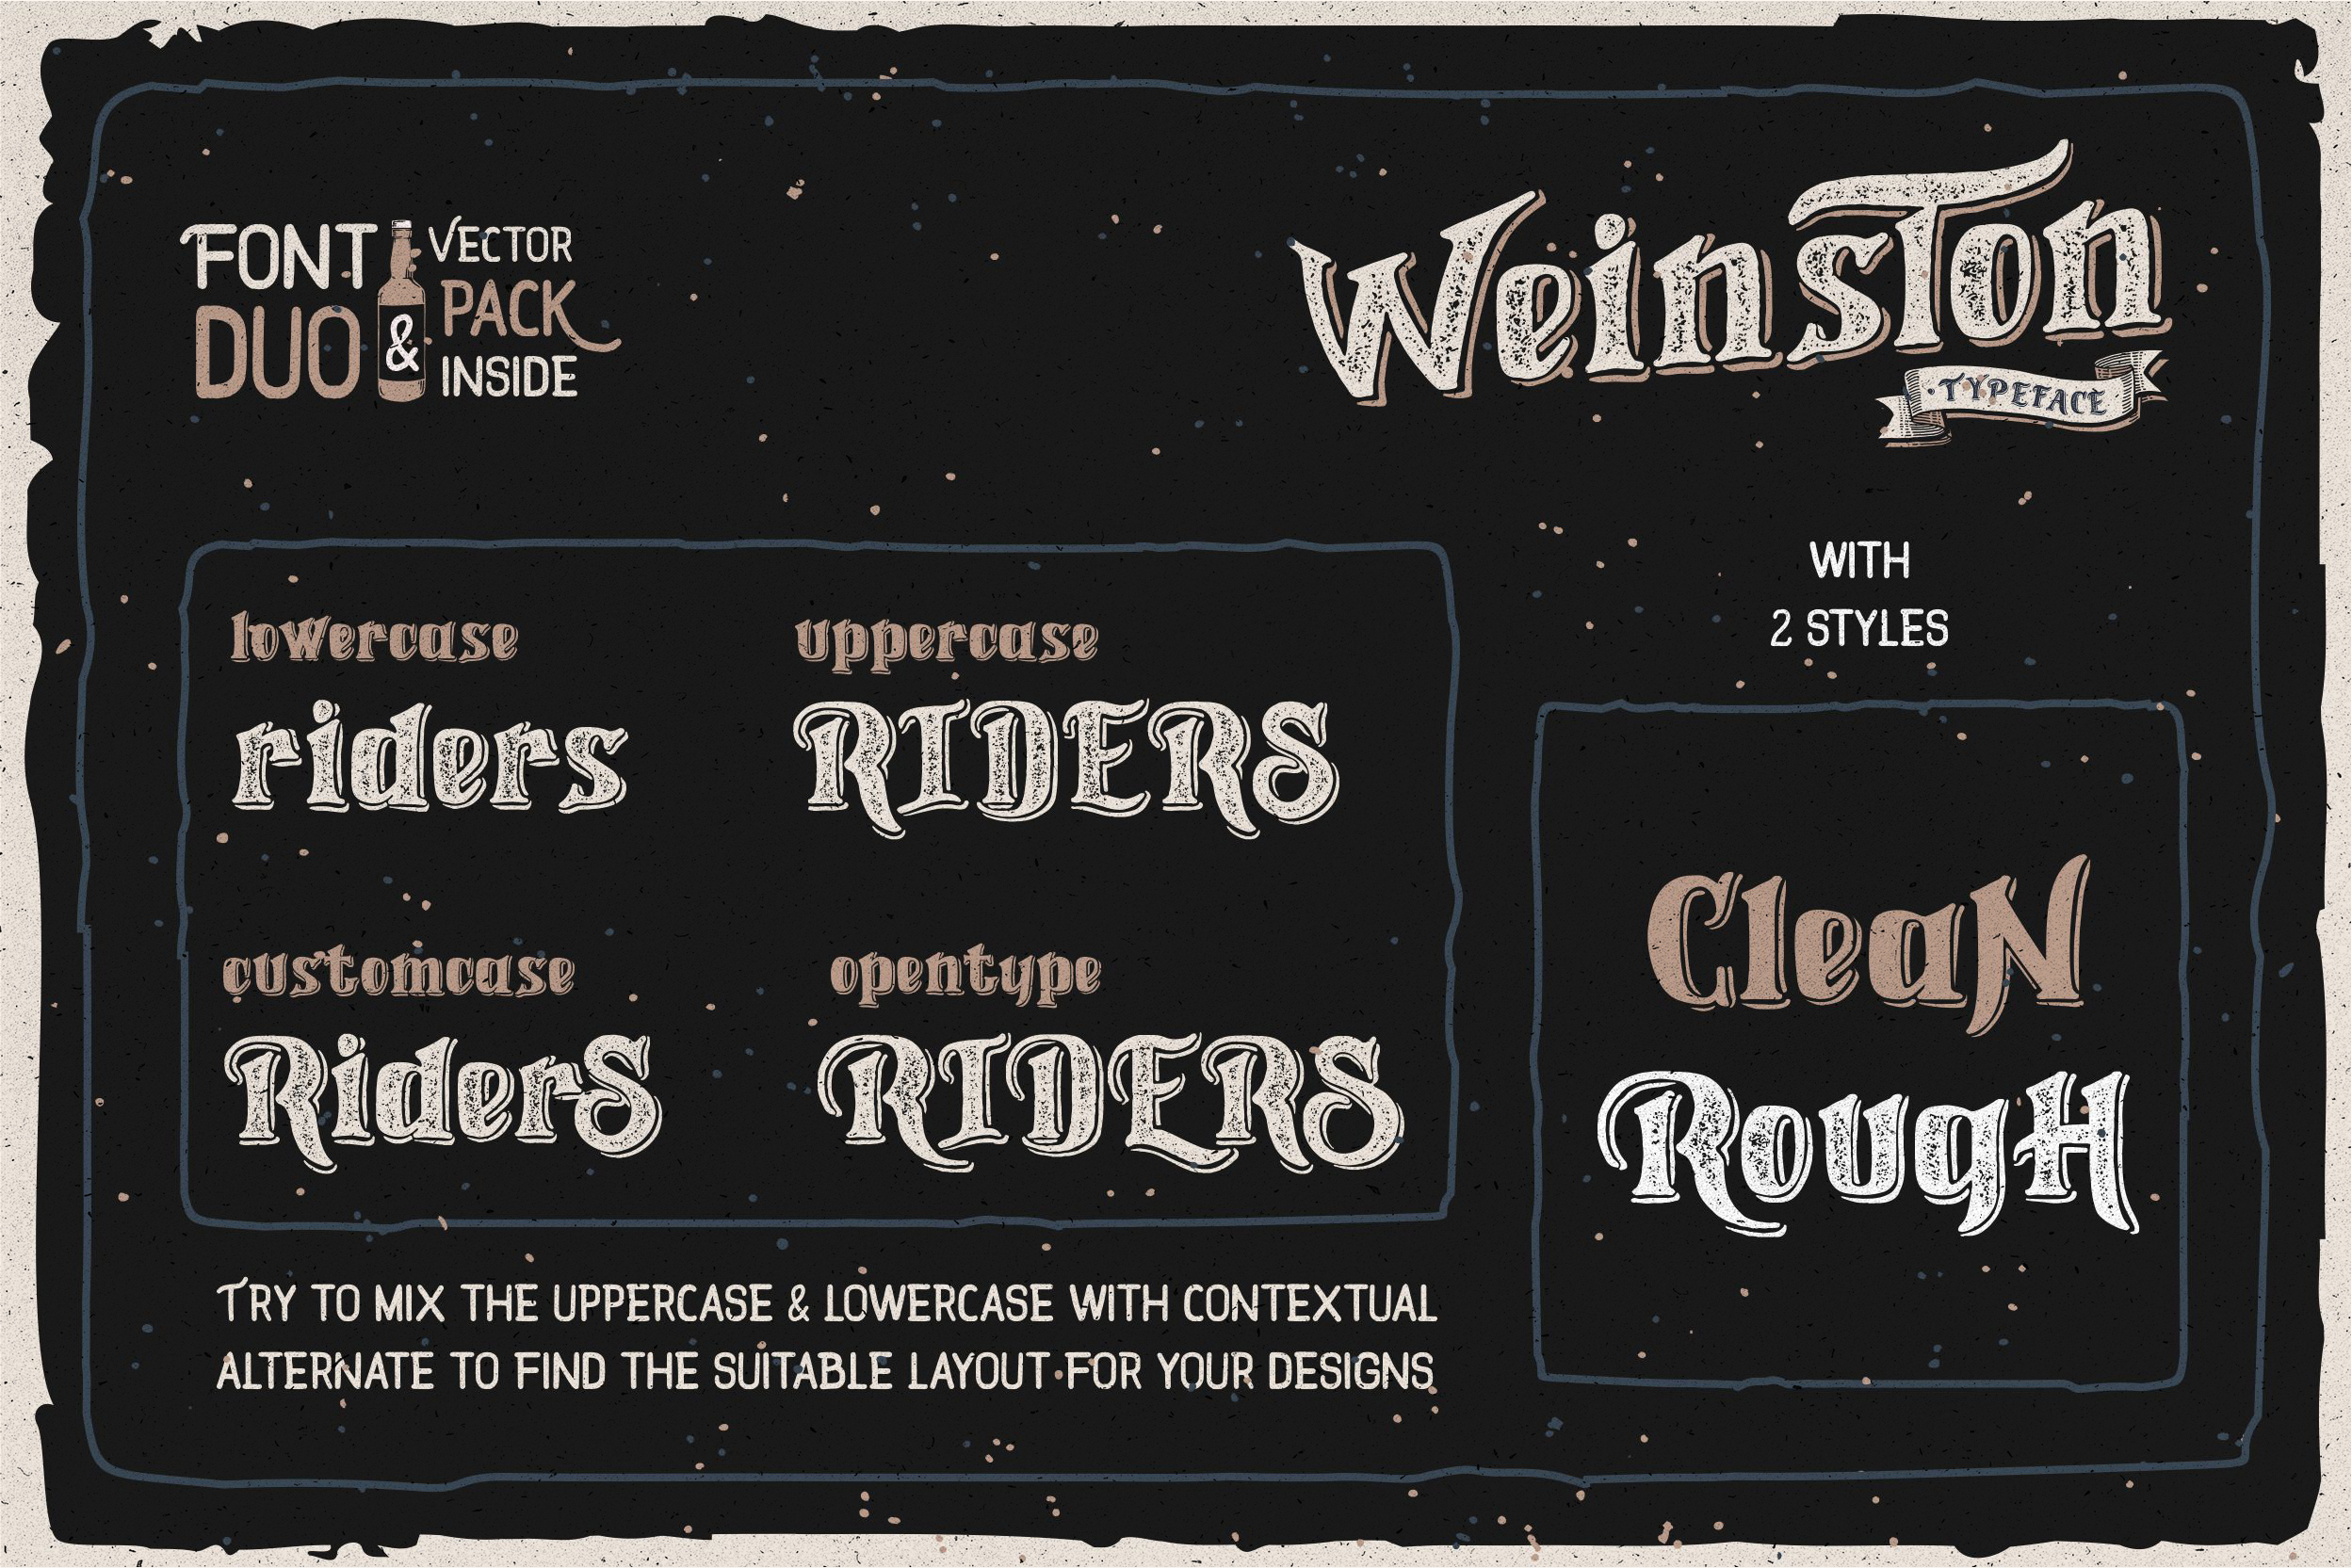 Weinston Typeface & Extras example image 2